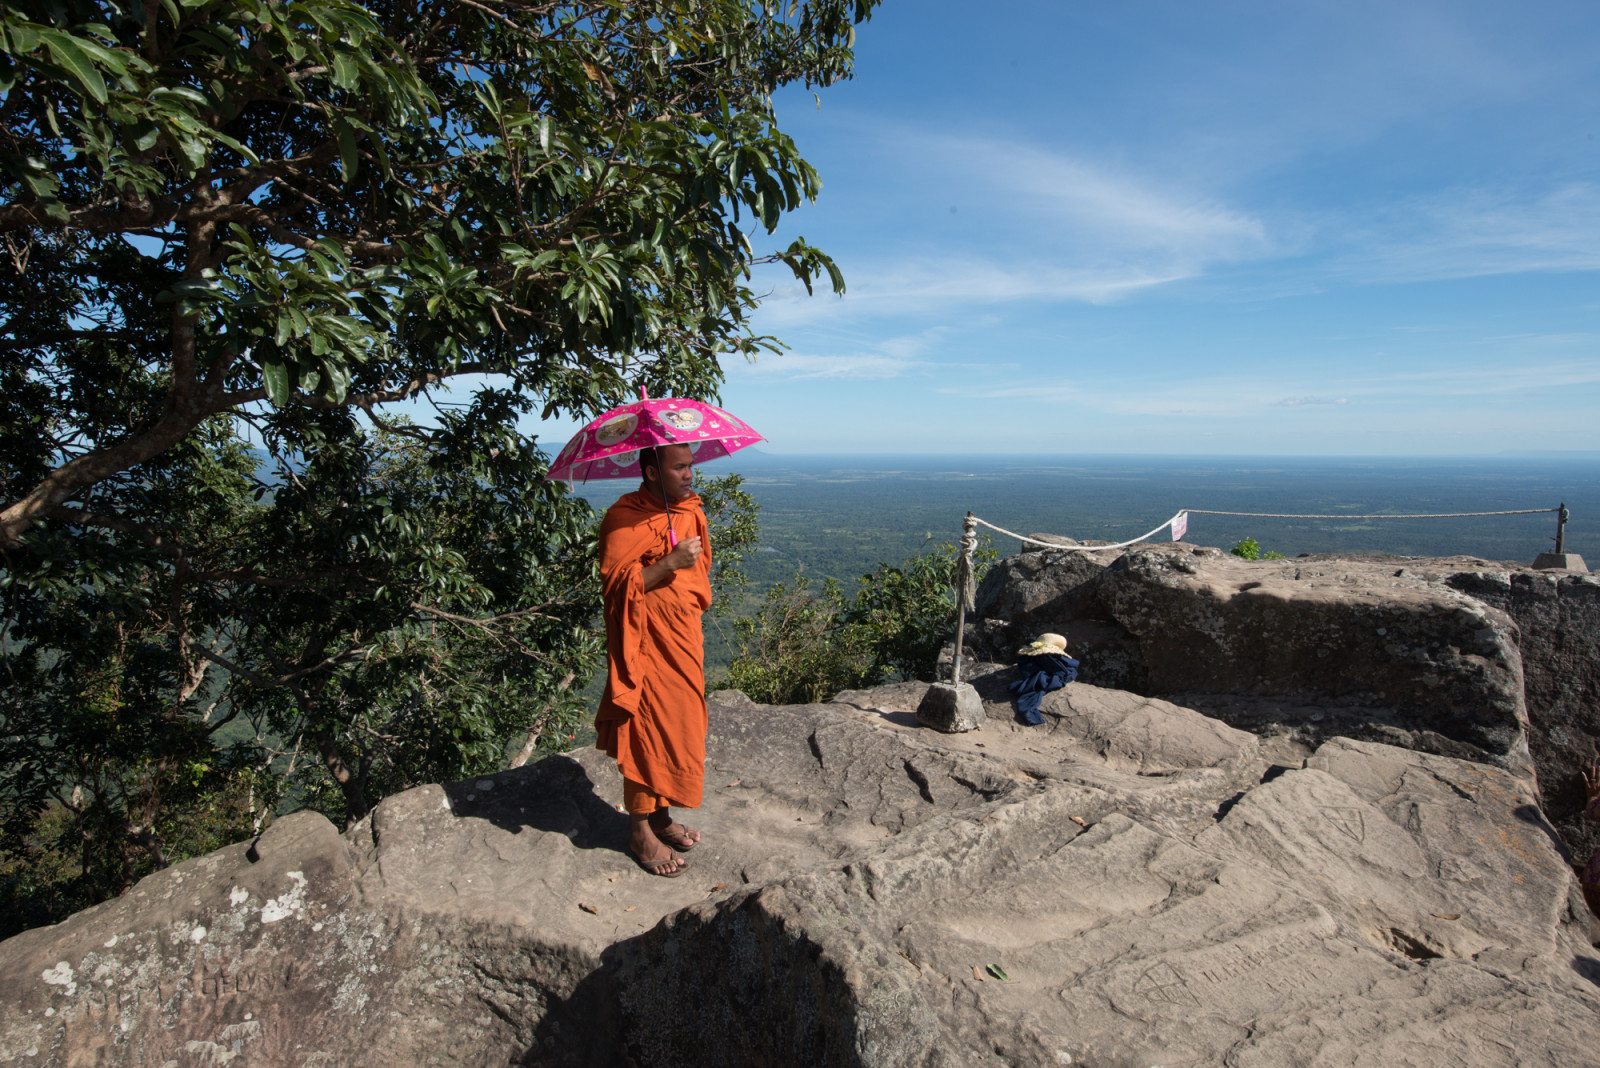 Cambodia photo tours Preah Vihear temple monk holding umbrella